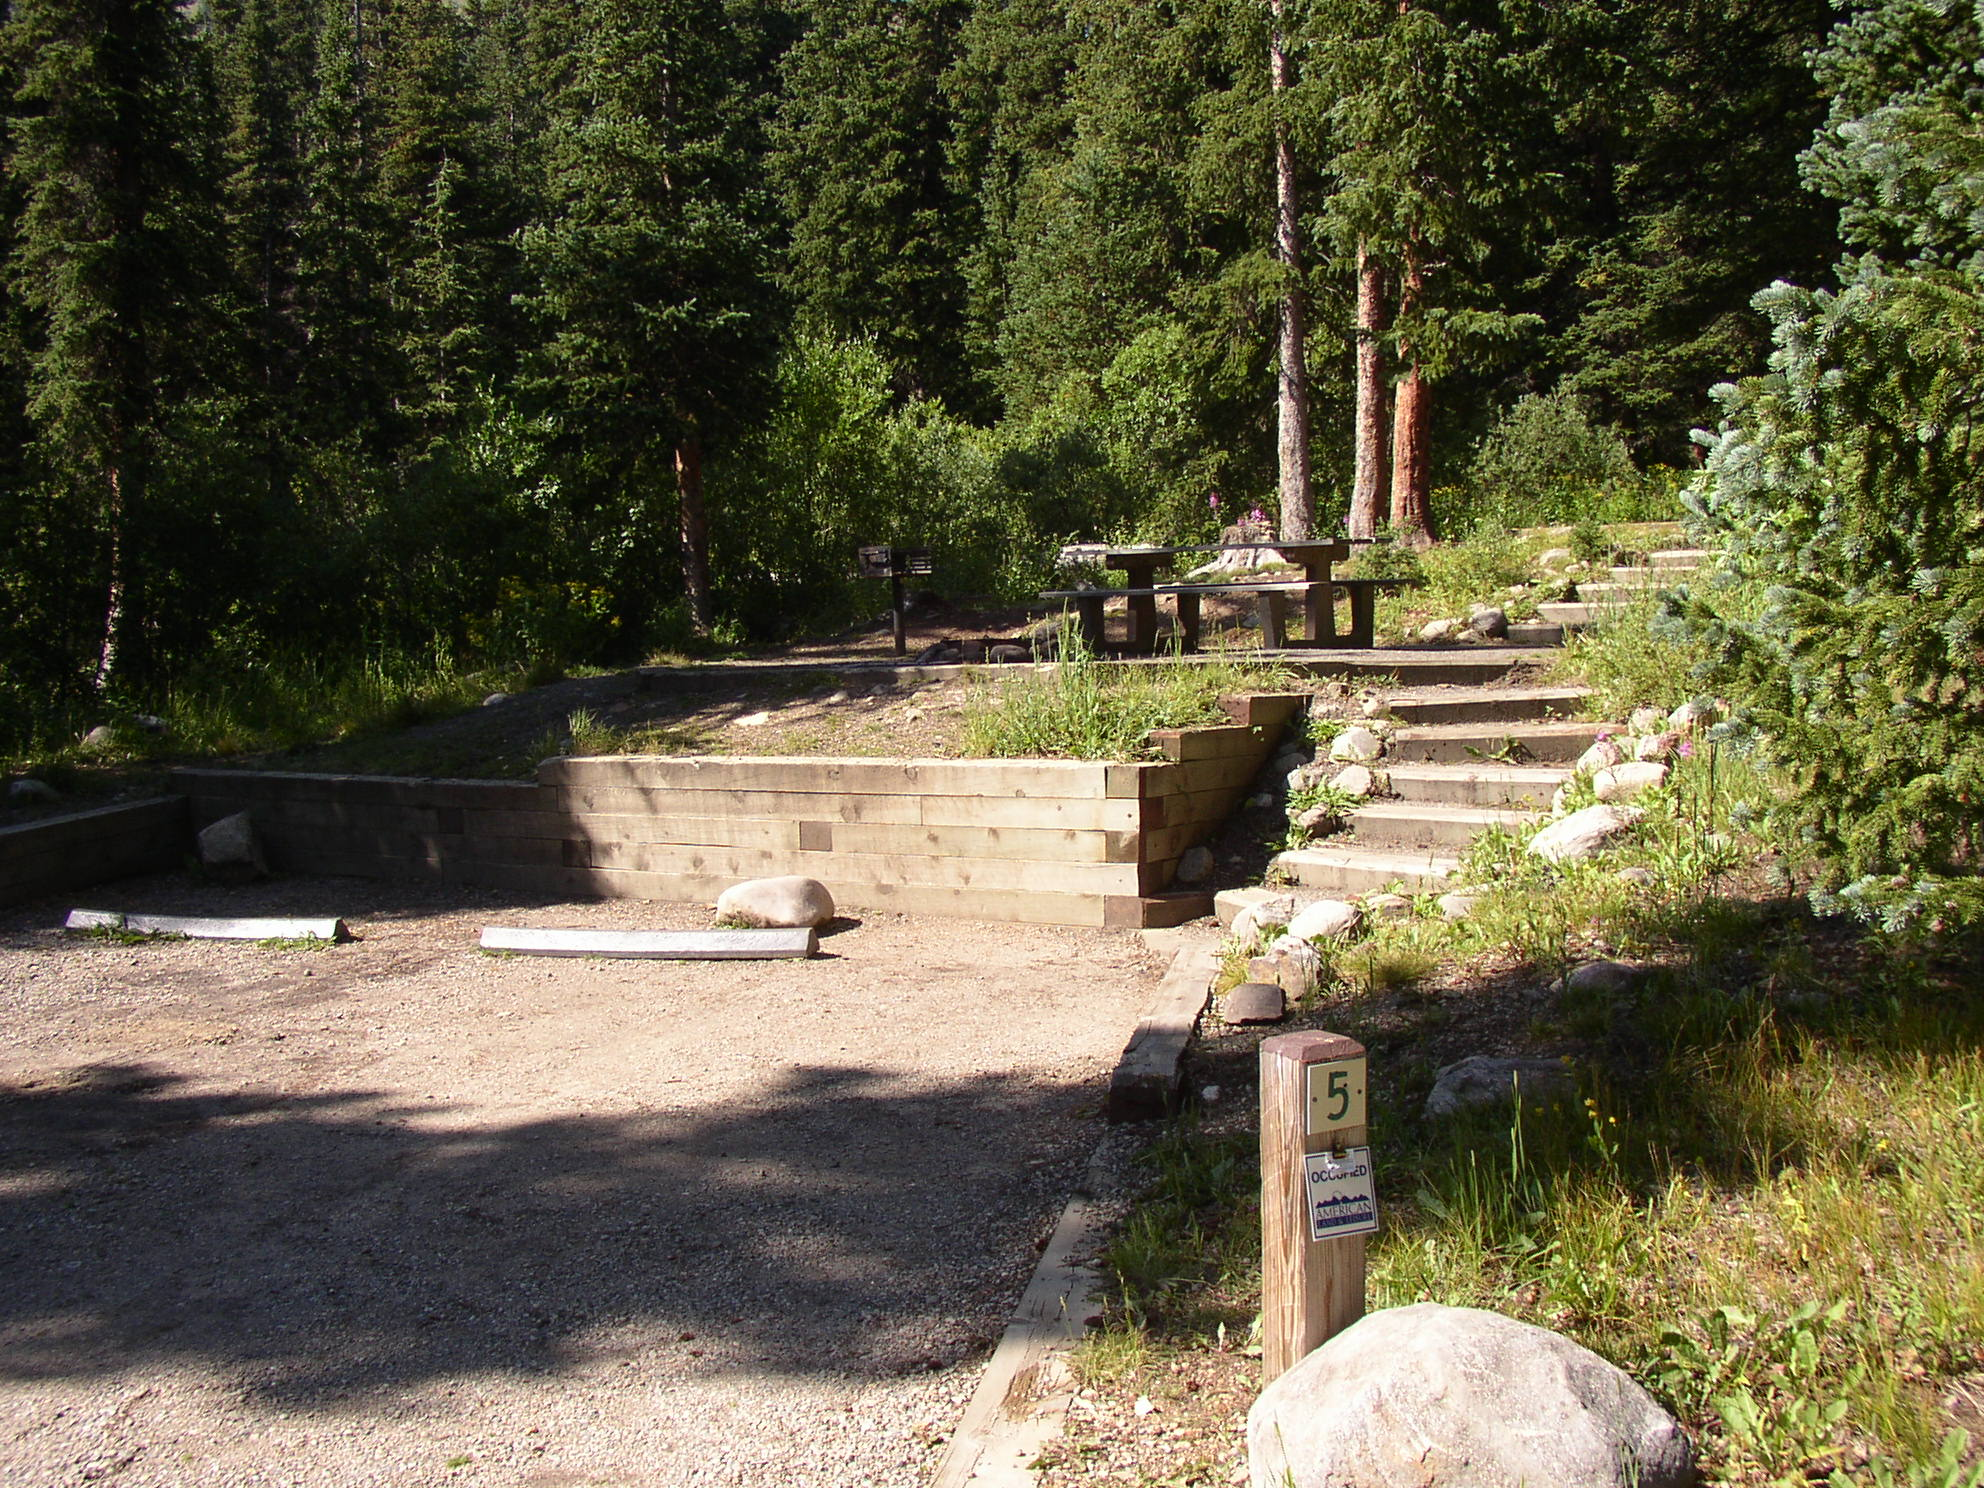 Stairs in some campsites